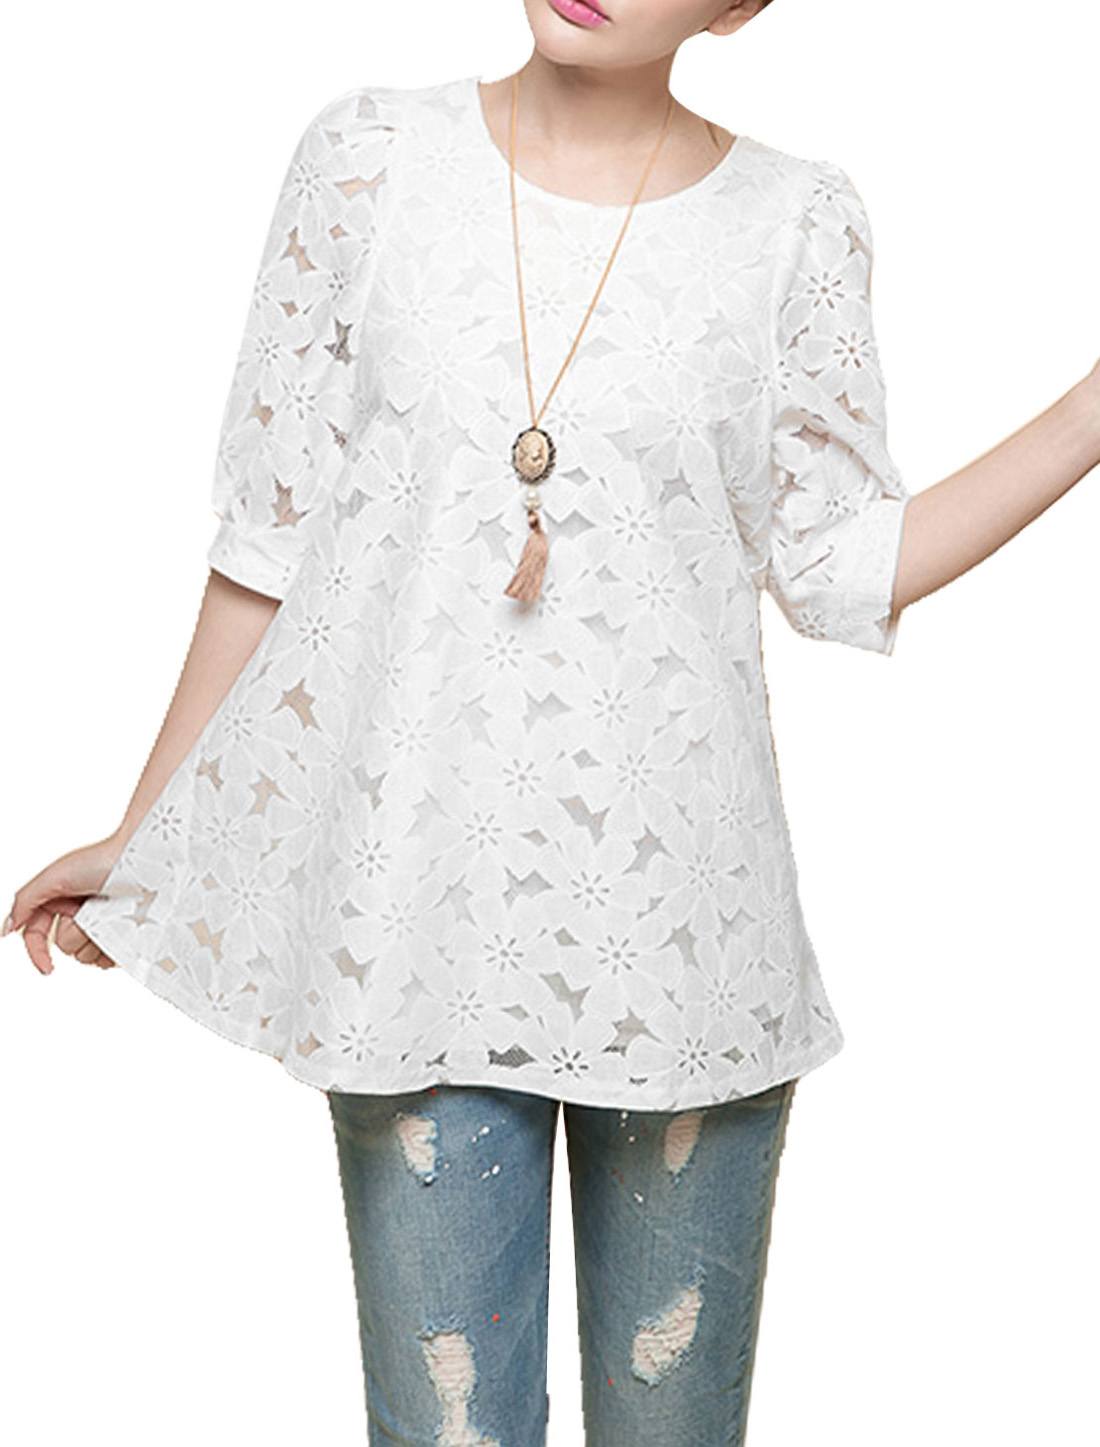 Round Neck Crochet Flowers Style Loose Blouse White XS for Women